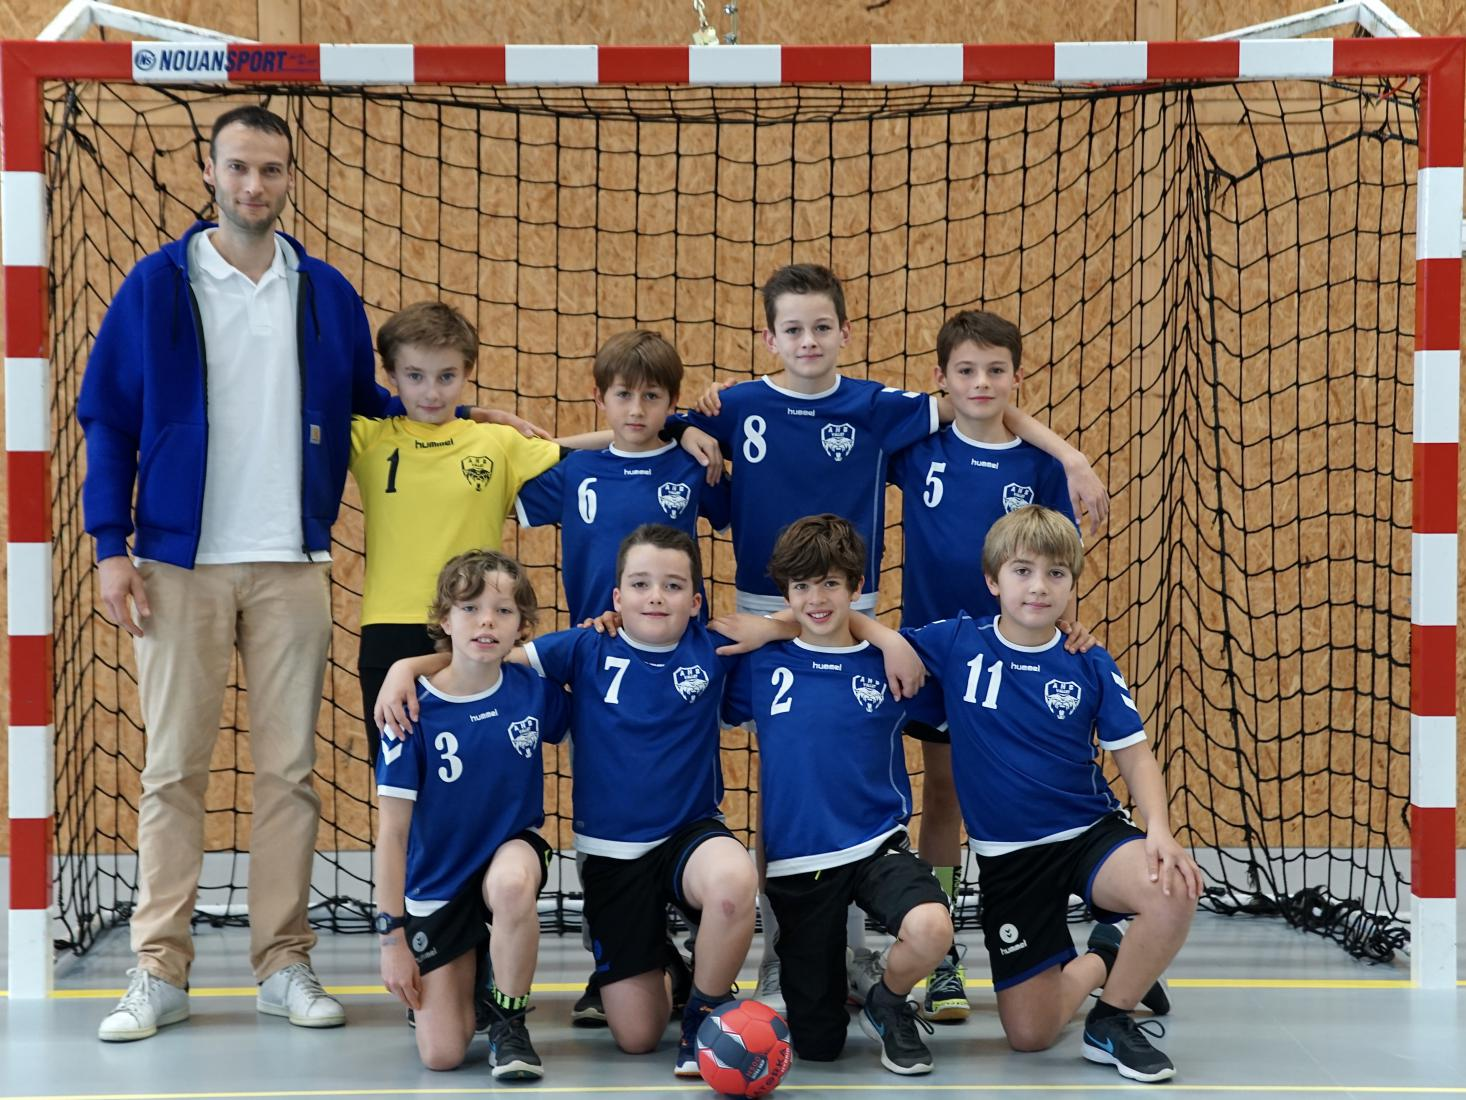 VALLET -12 M (1) - Association Handball Vallet